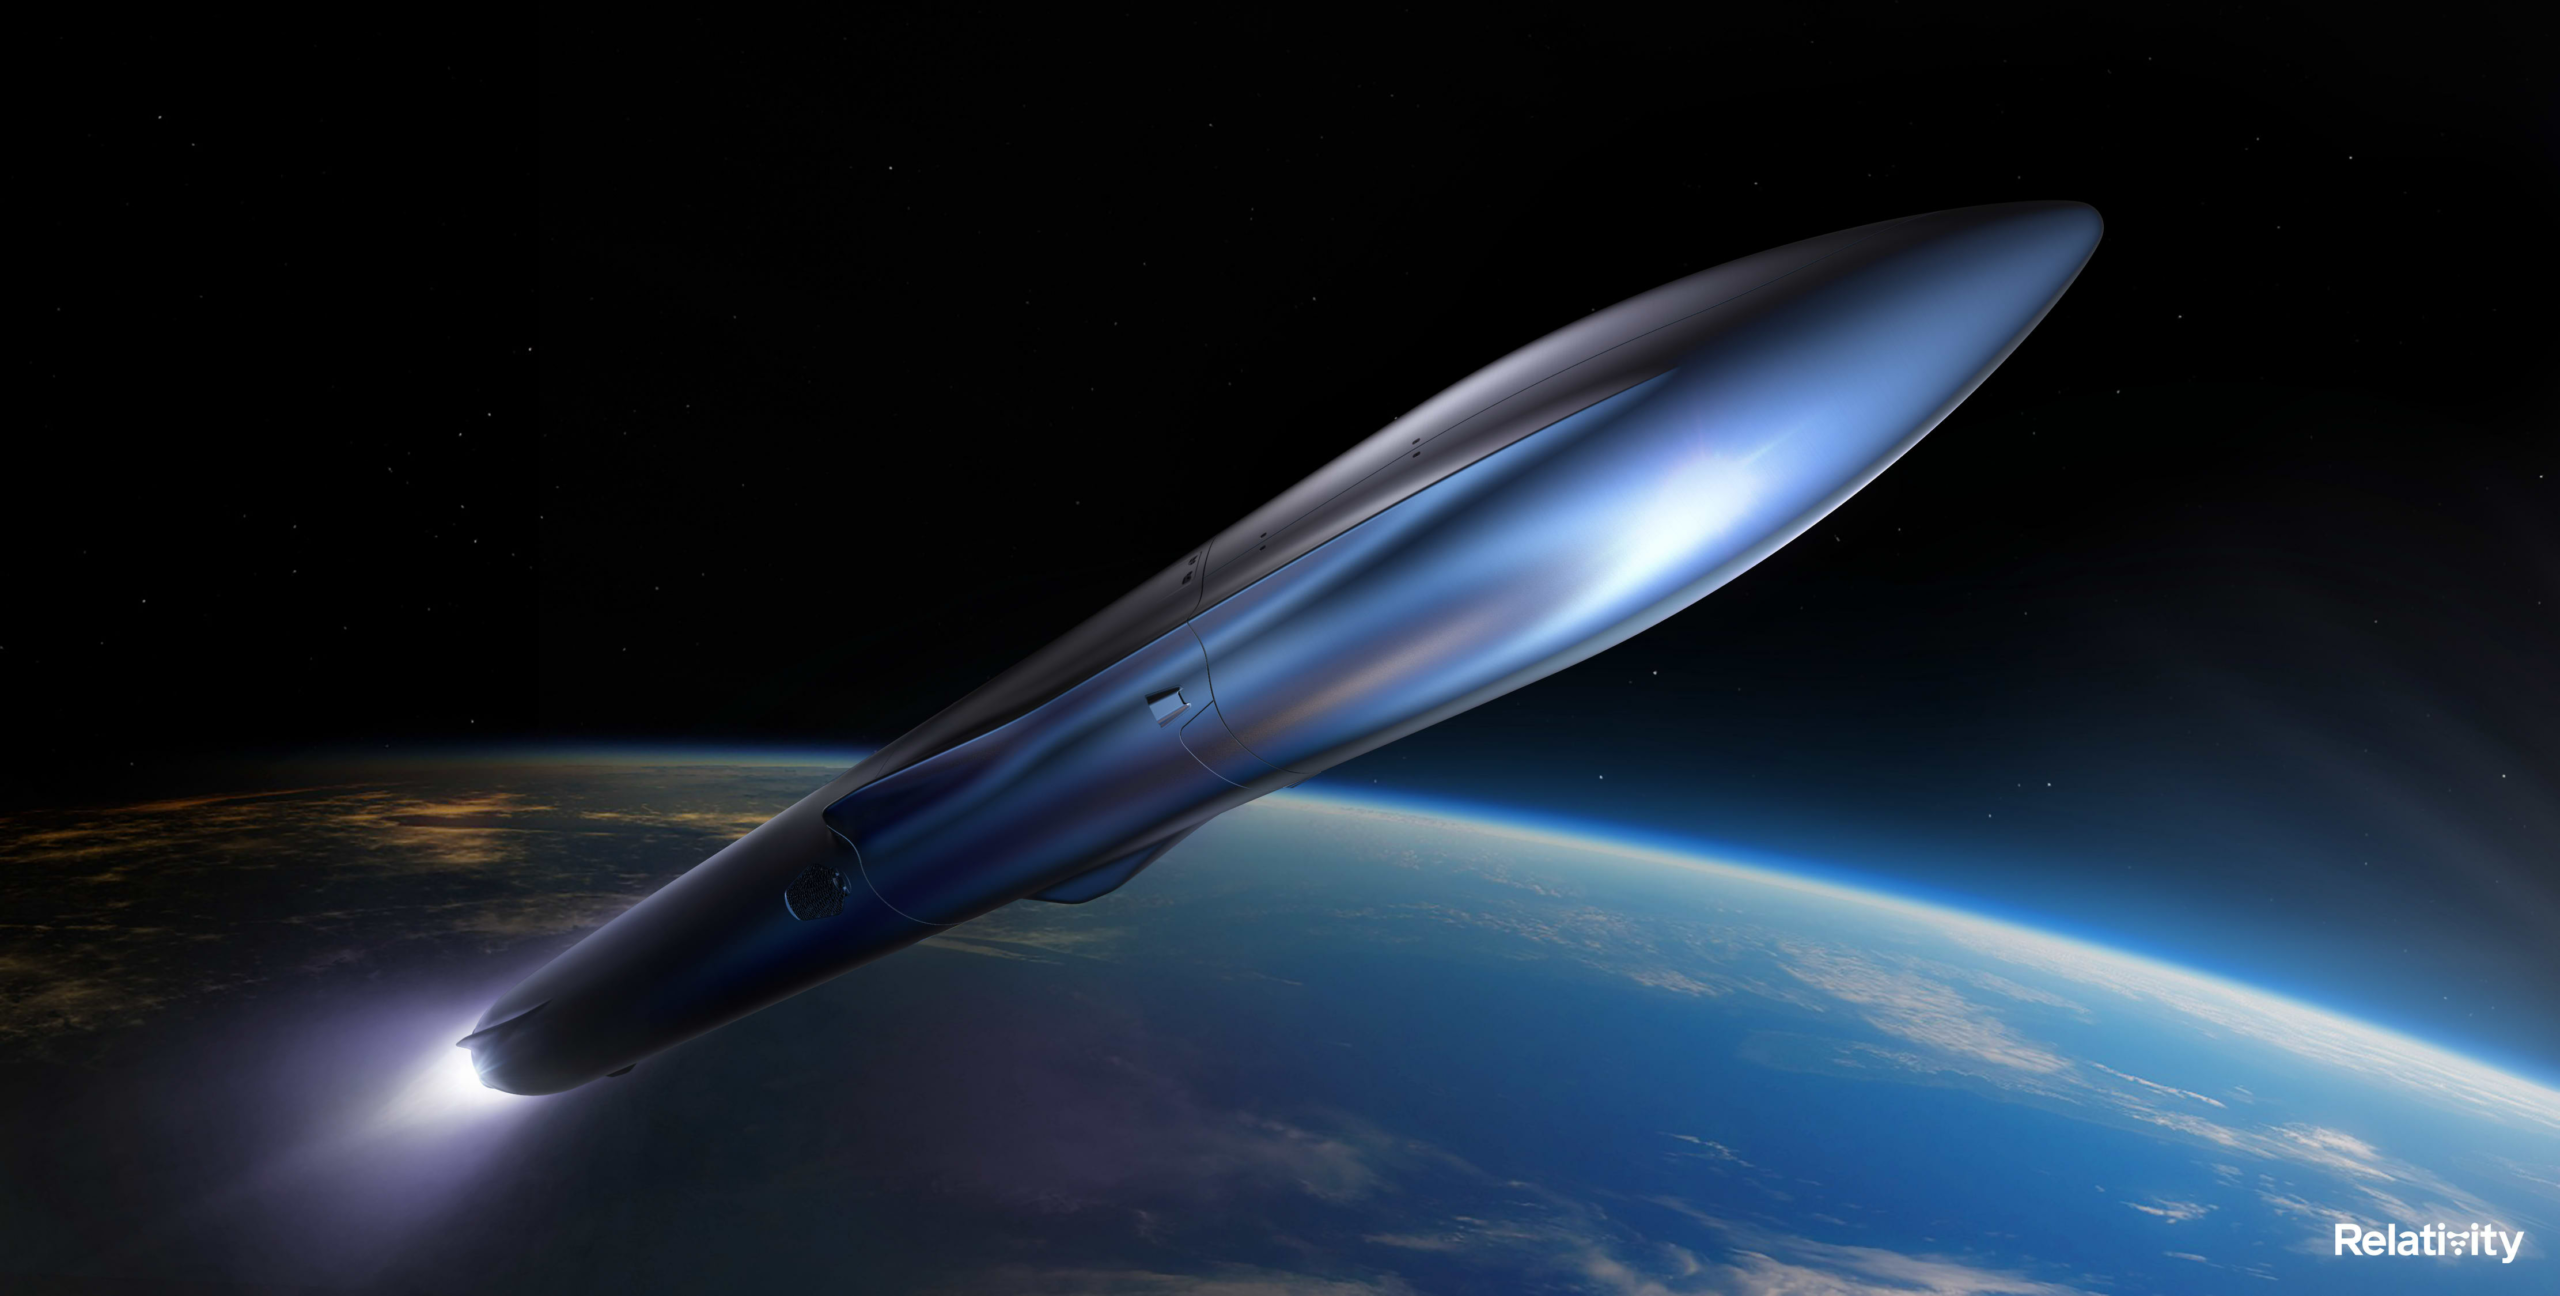 Relativity House raises $650 million for 3D-printed SpaceX competitor